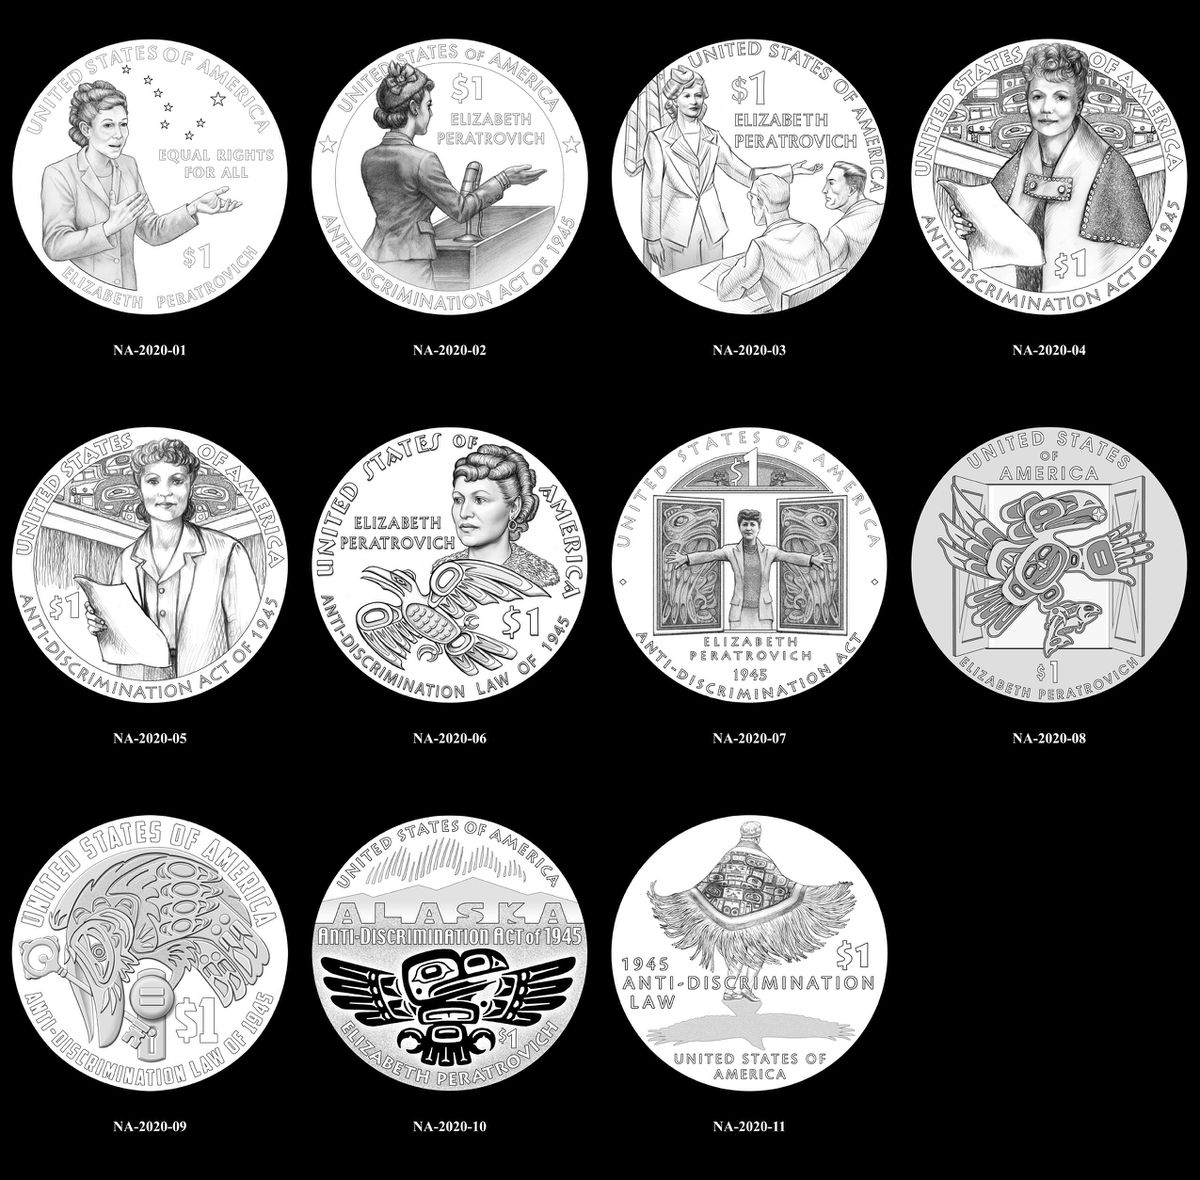 Designs being considered for a 2020 $1 coin honoring Elizabeth Peratrovich (Office of Gov. Bill Walker)